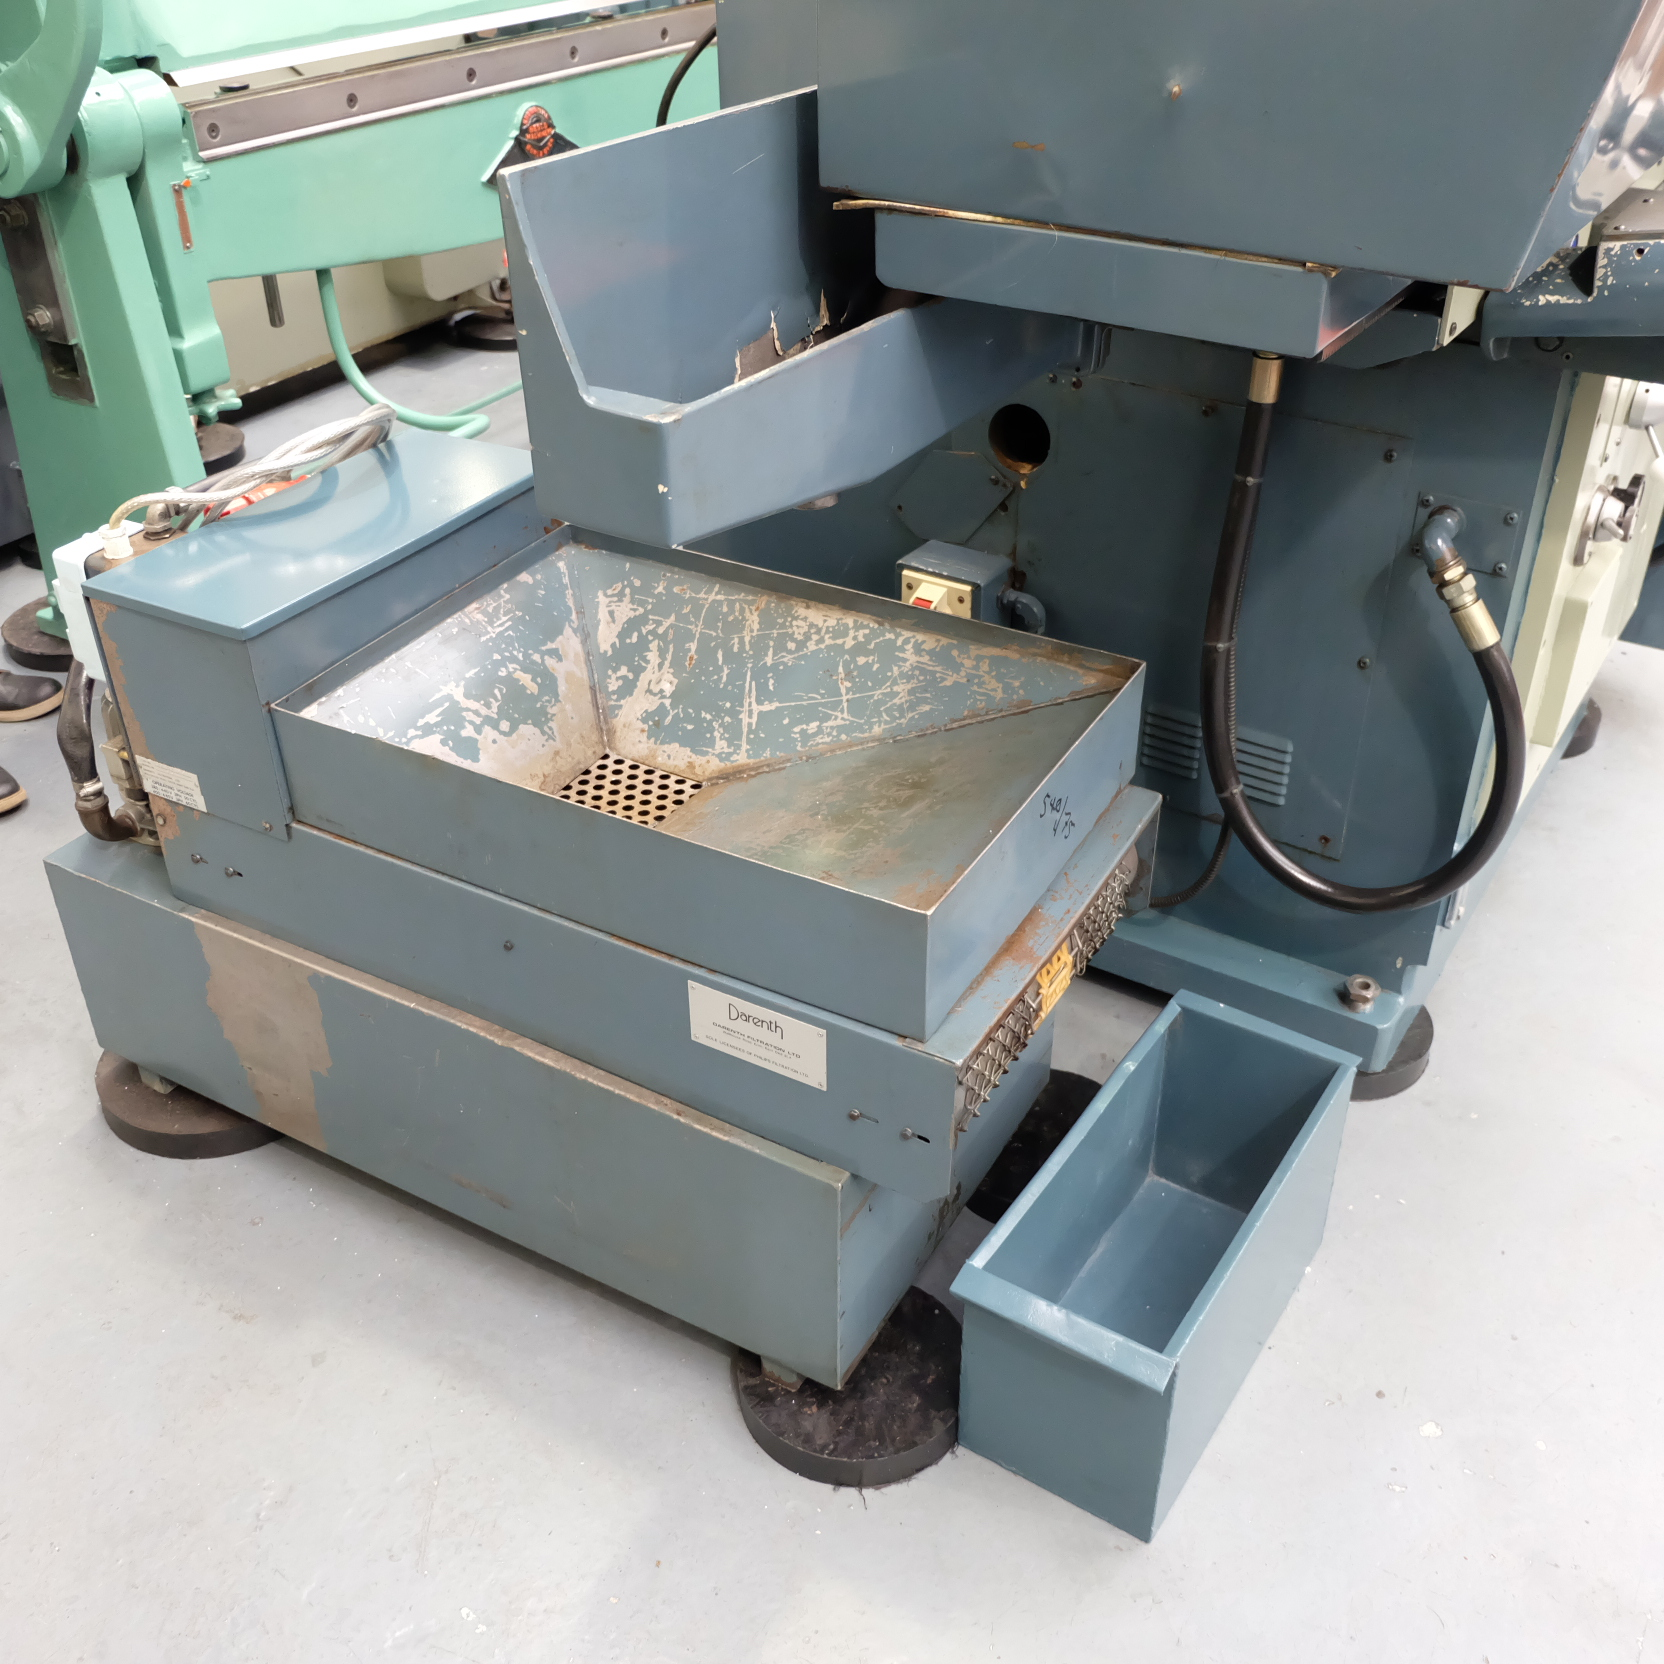 Jones & Shipman Type 1415 Toolroom Surface Grinder. With Magnetic Chuck & Coolant Tank. - Image 9 of 14